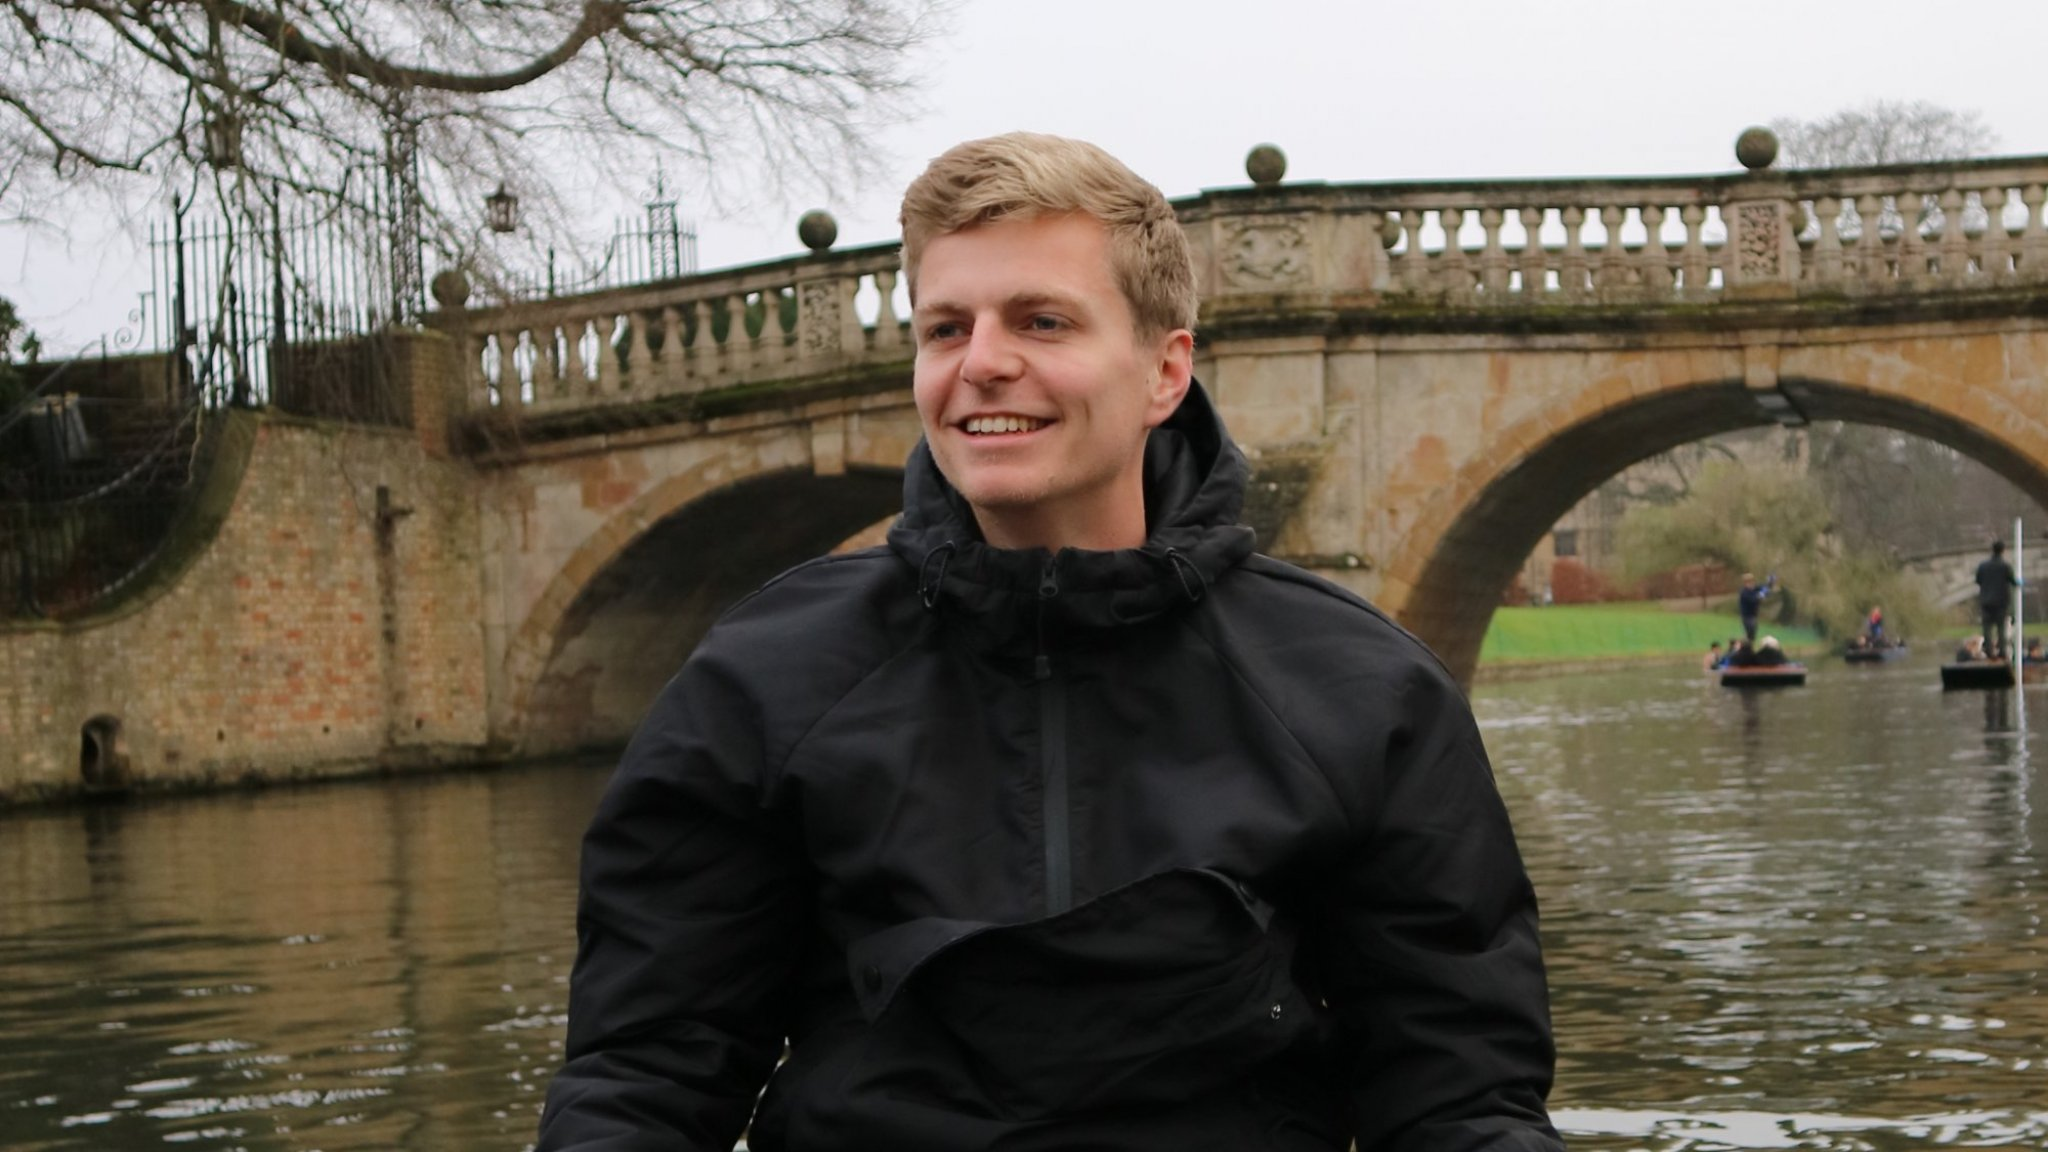 """Eloy is one of 998 Dutch people who want to be an astronaut: """"I'm not 100% without a chance"""""""